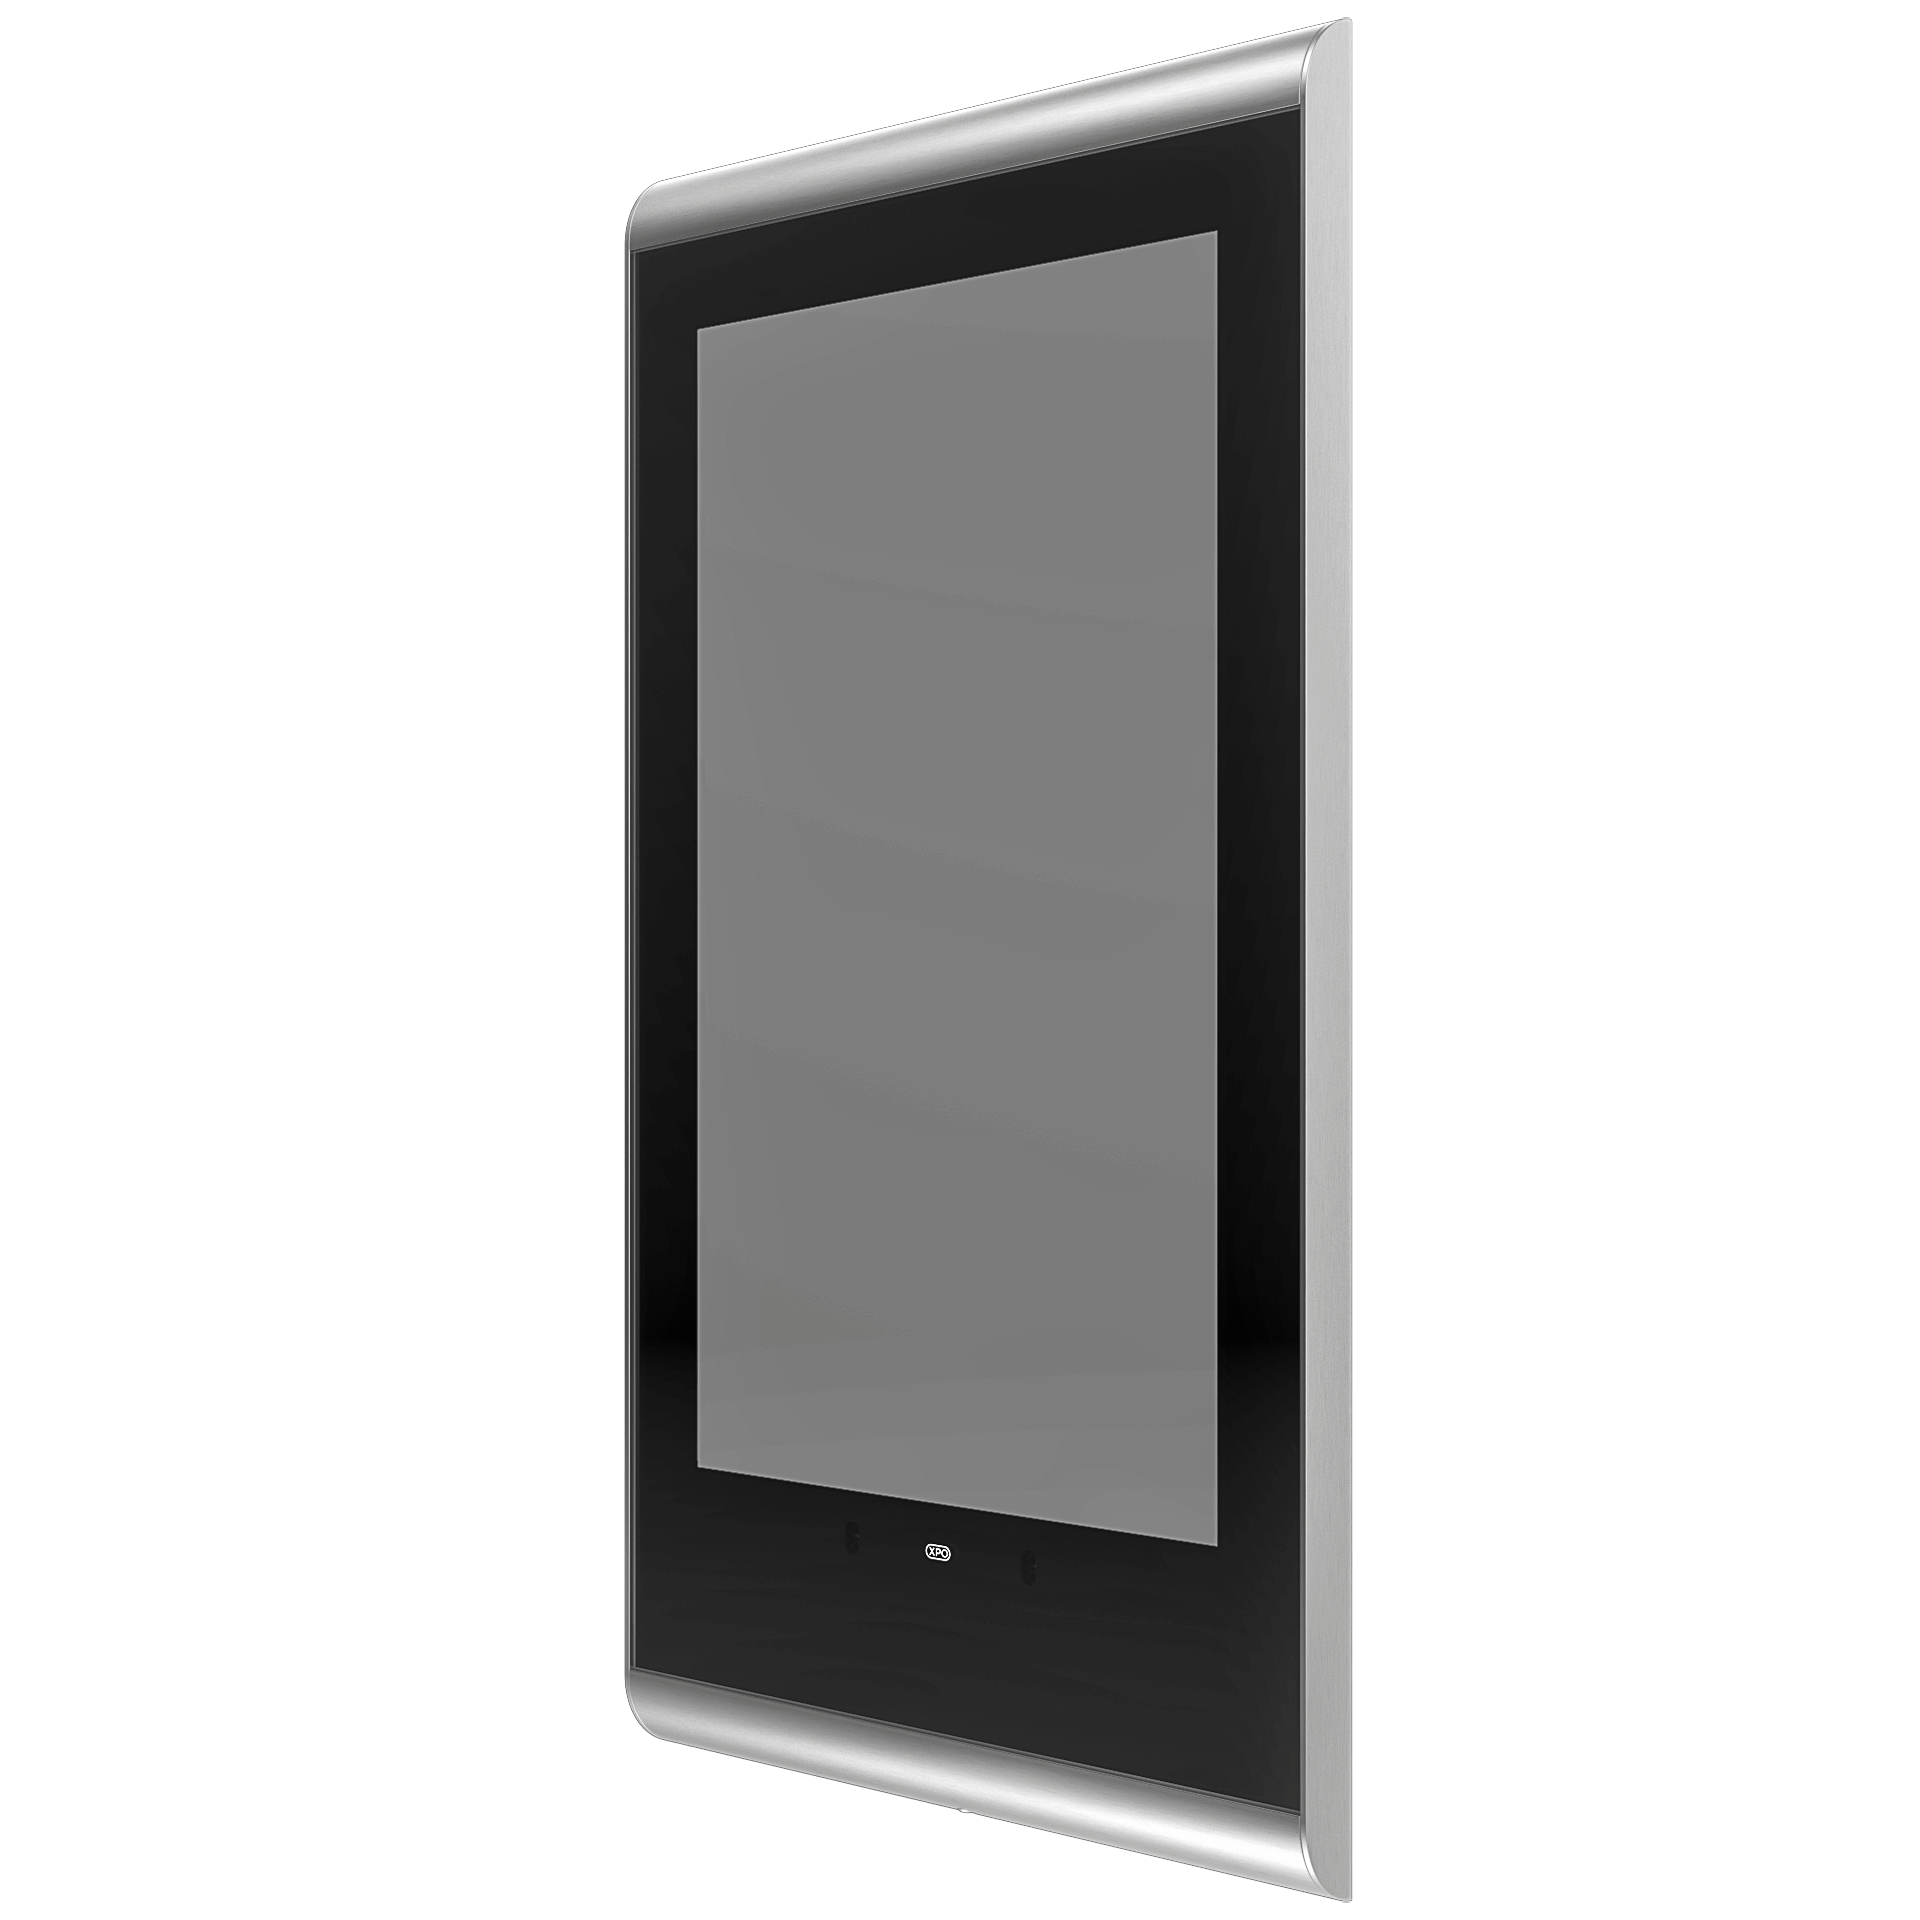 XPO Screens Invite 24PT Small-Perspective view See through OFF